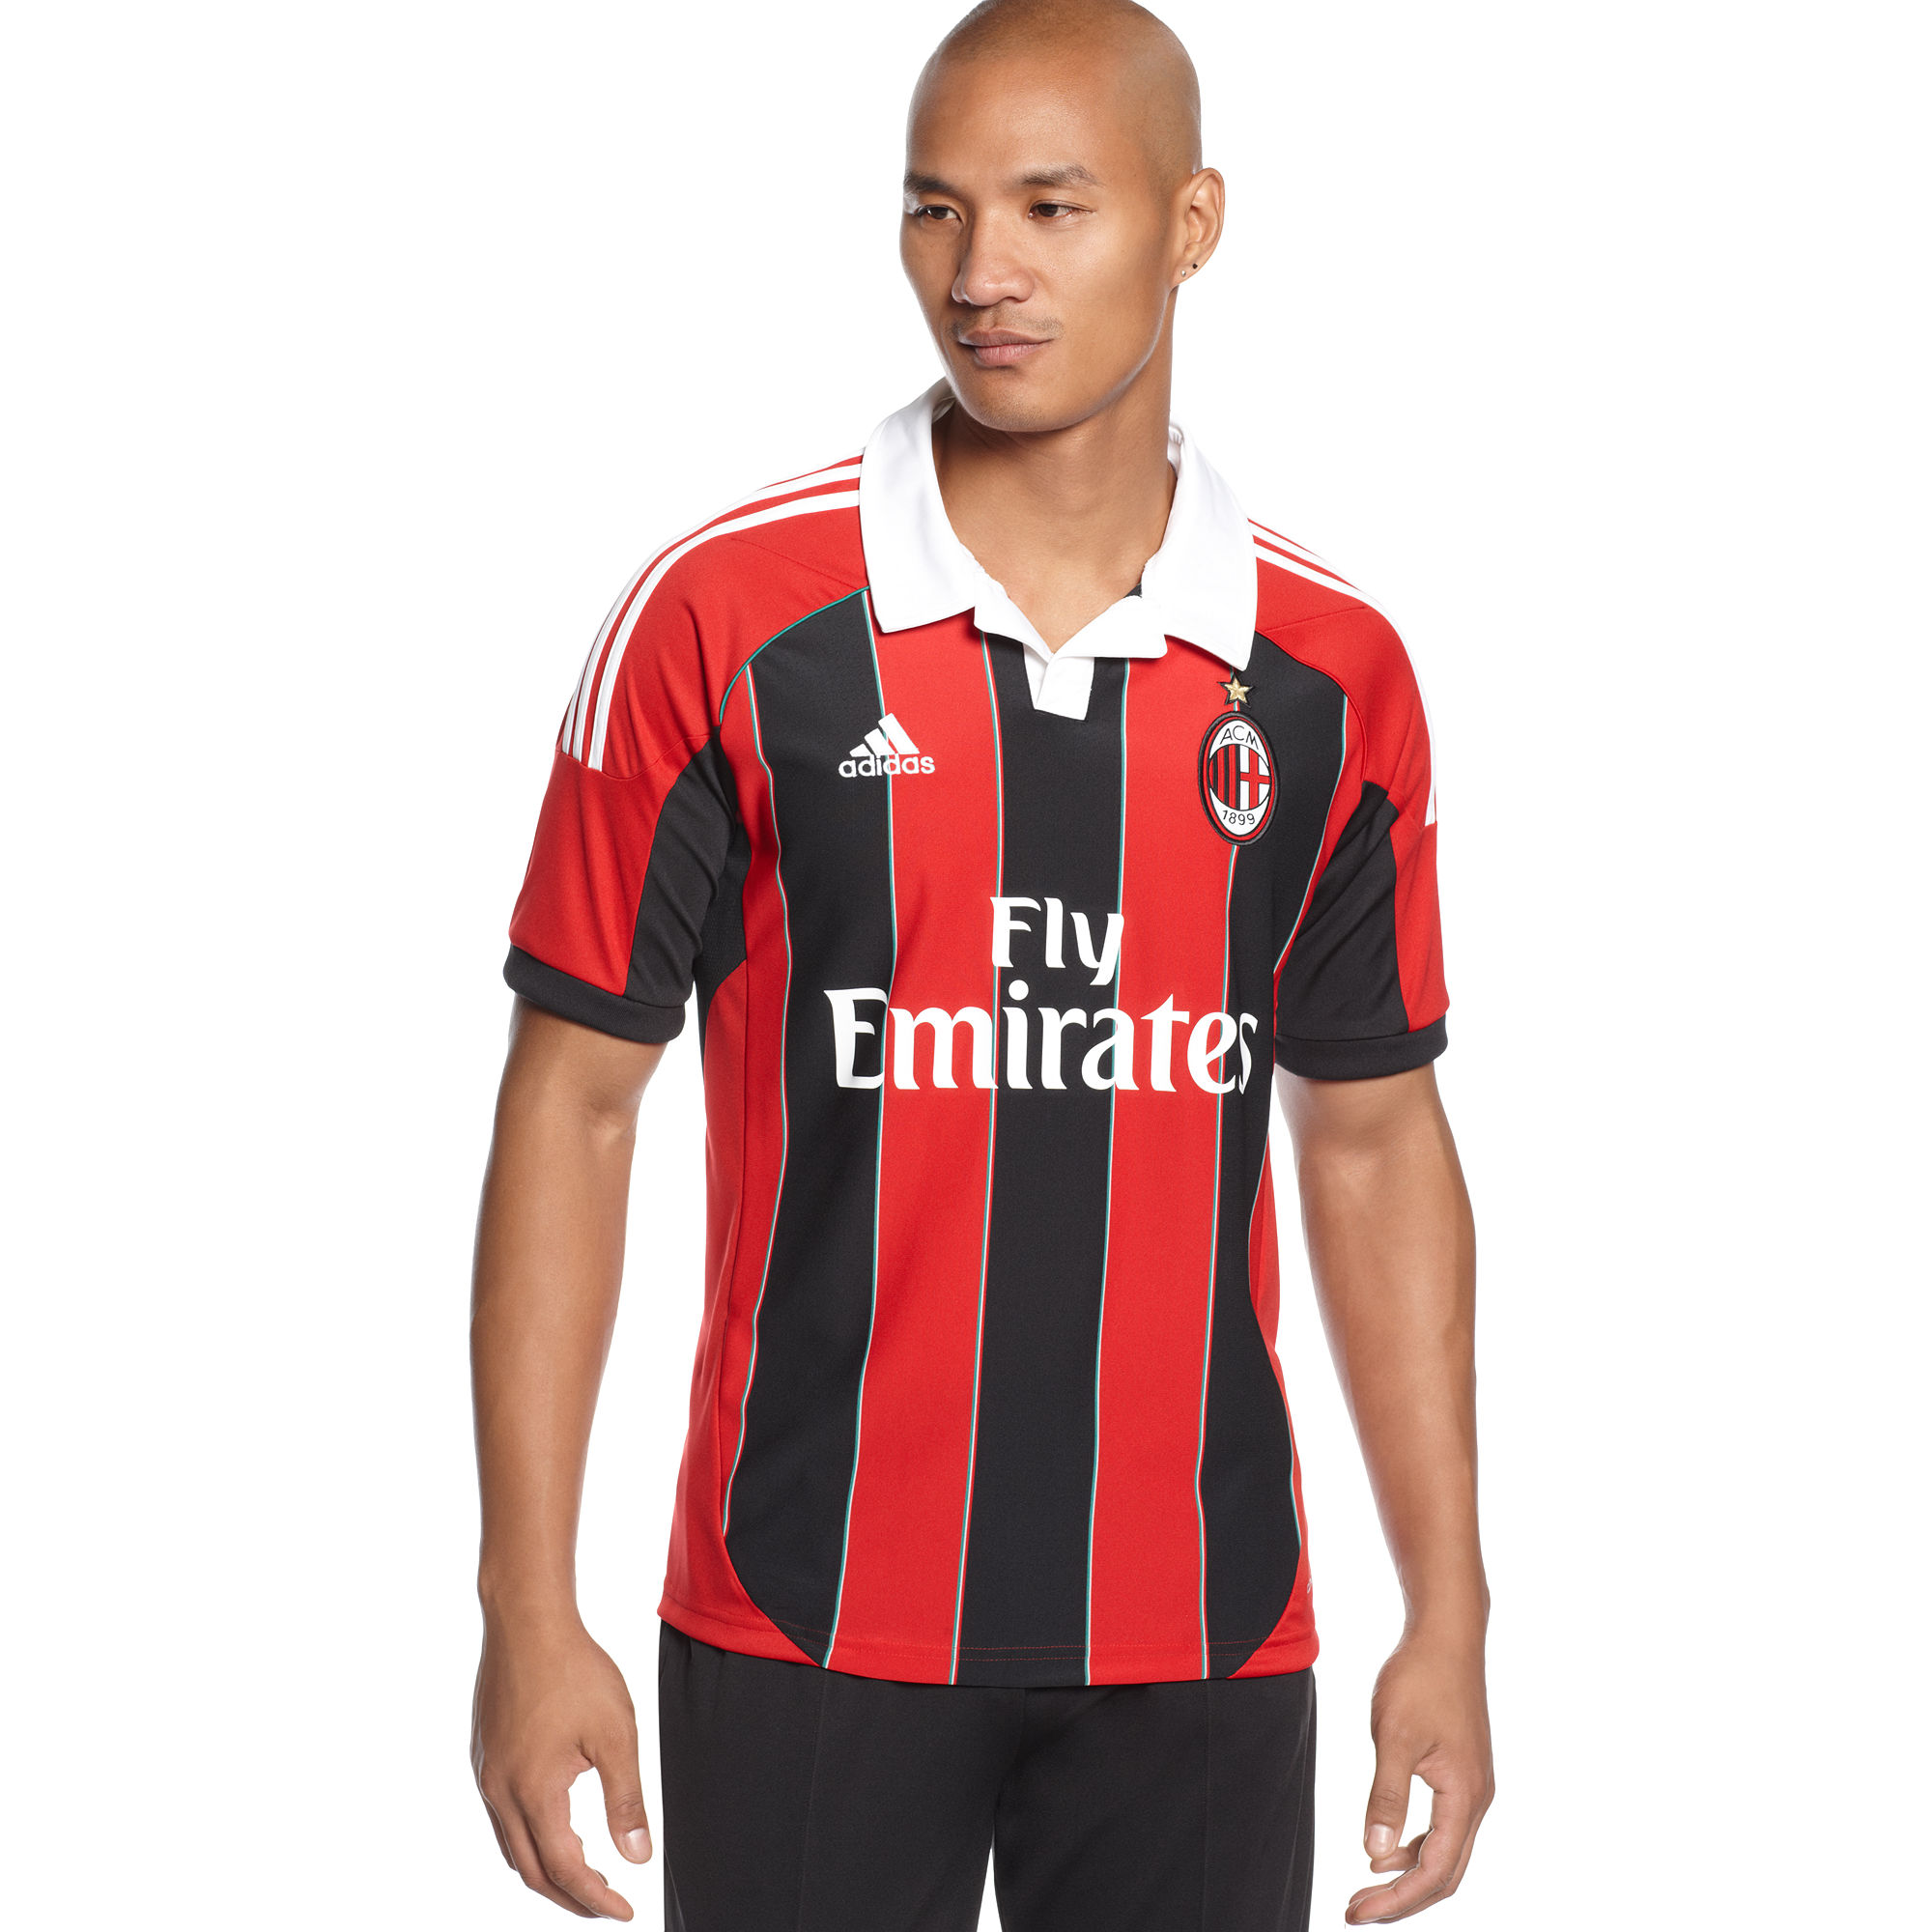 Lyst - Adidas Climacool Ac Milan Home Jersey in Red for Men 30827e5ed